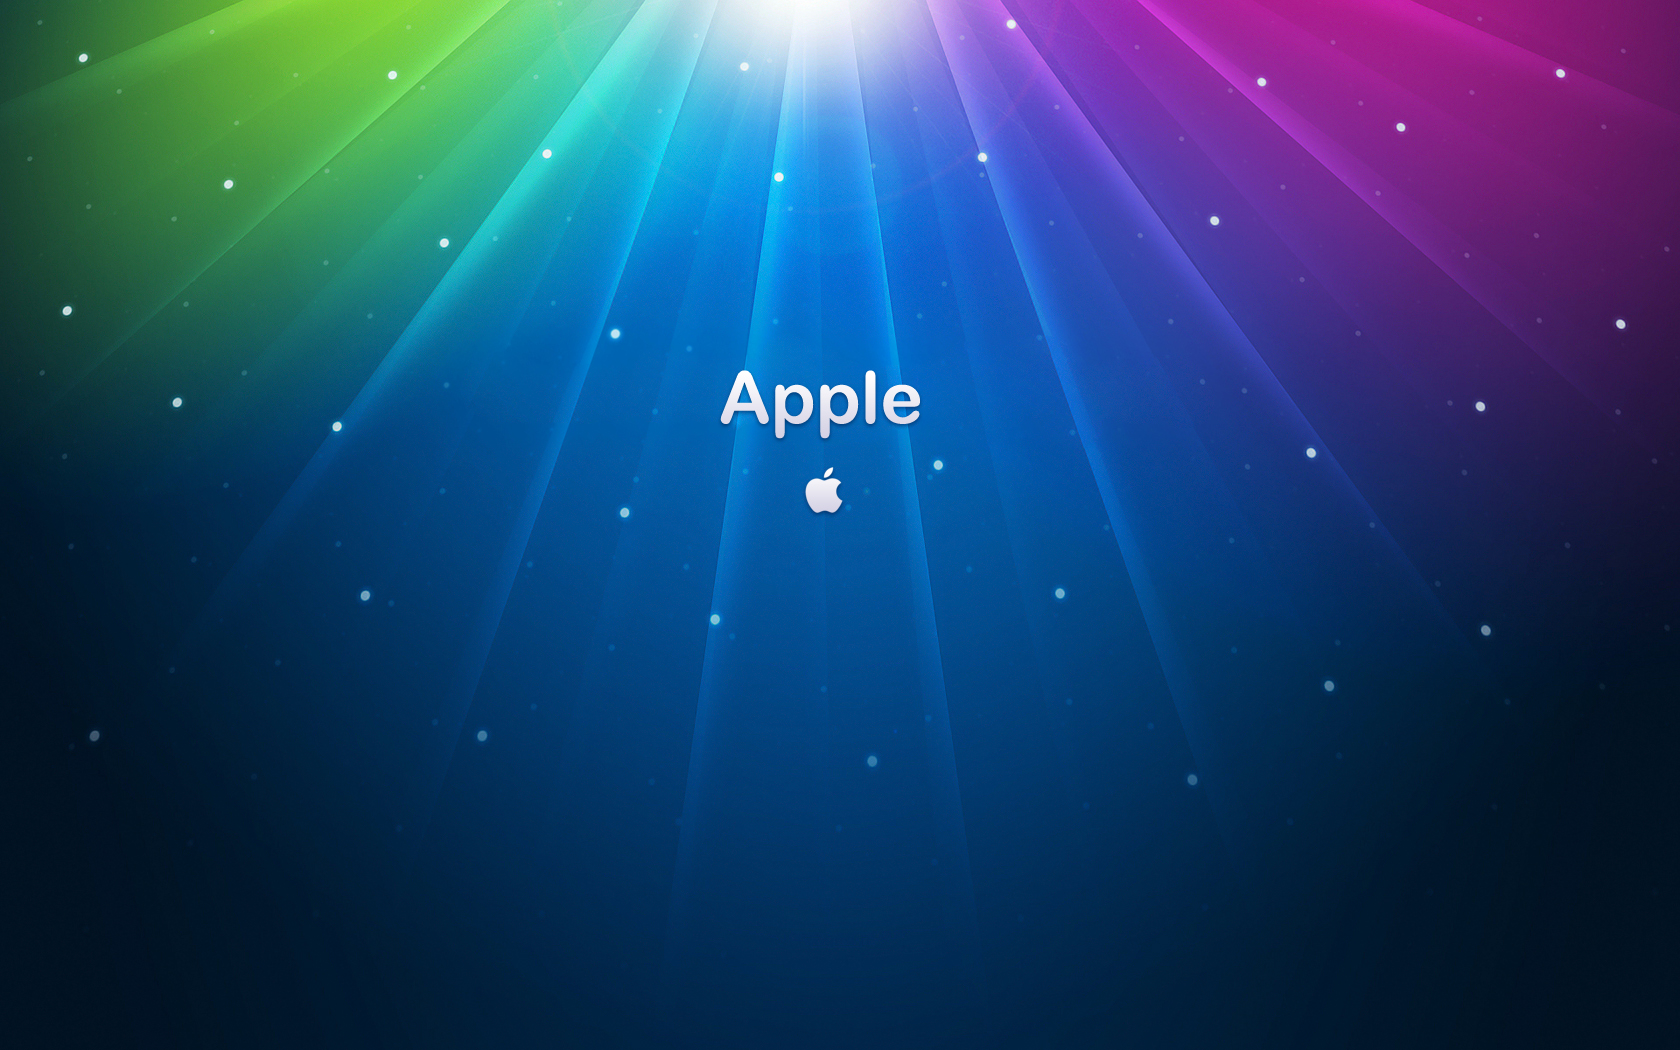 Apple, aurora, wallpaper, image, colors, wallpapers